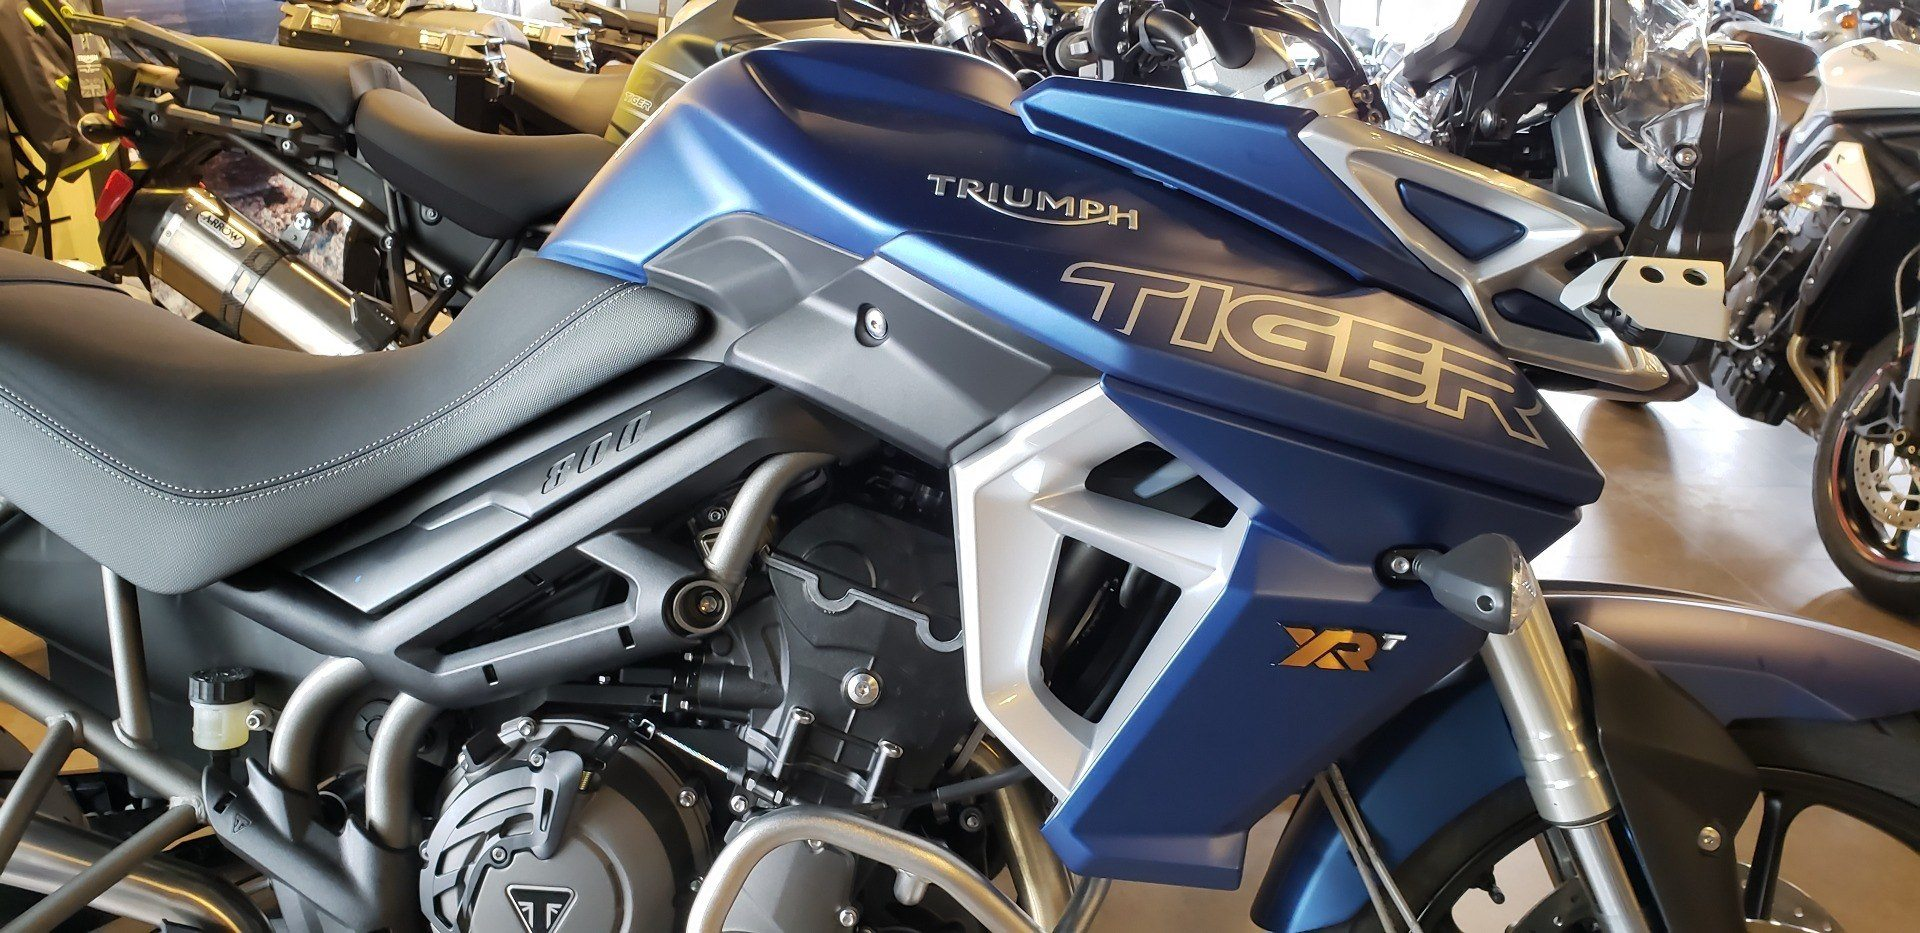 New 2019 Triumph Tiger 800 Xrt Motorcycles In Shelby Township Mi